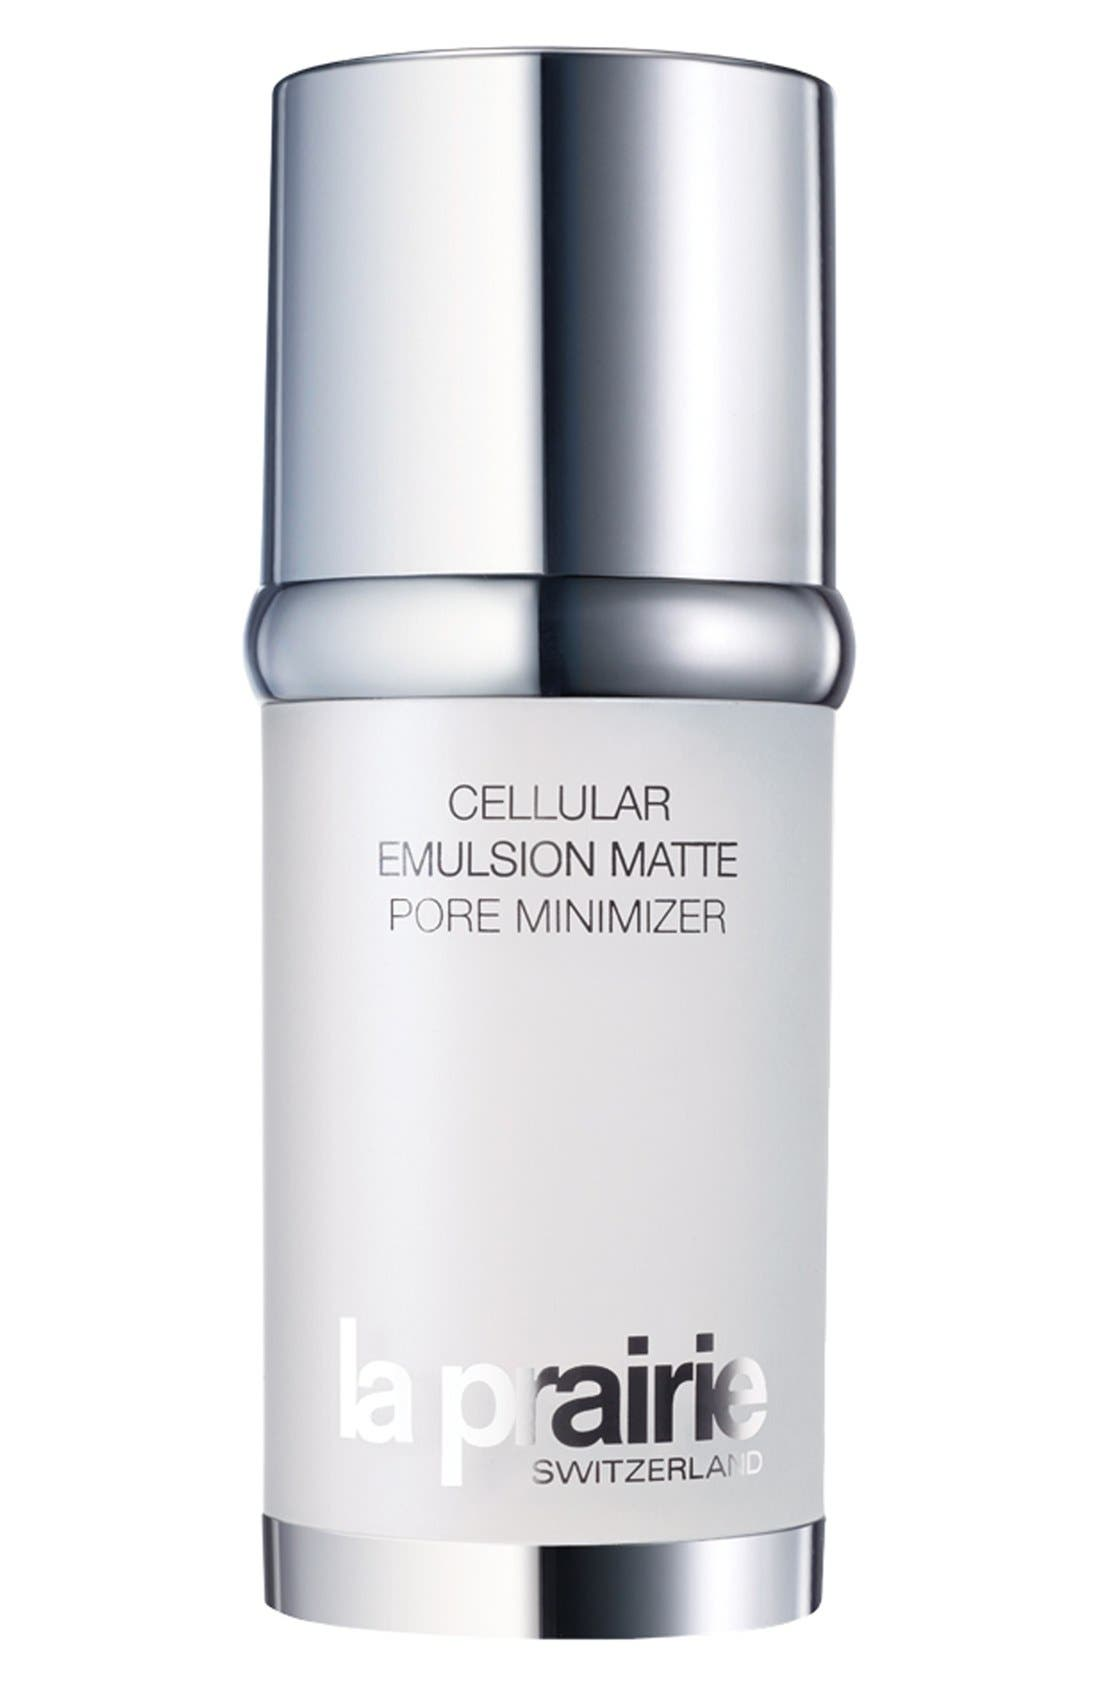 LA PRAIRIE,                             'Cellular Emulsion' Matte Pore Minimizer Moisturizer,                             Main thumbnail 1, color,                             000